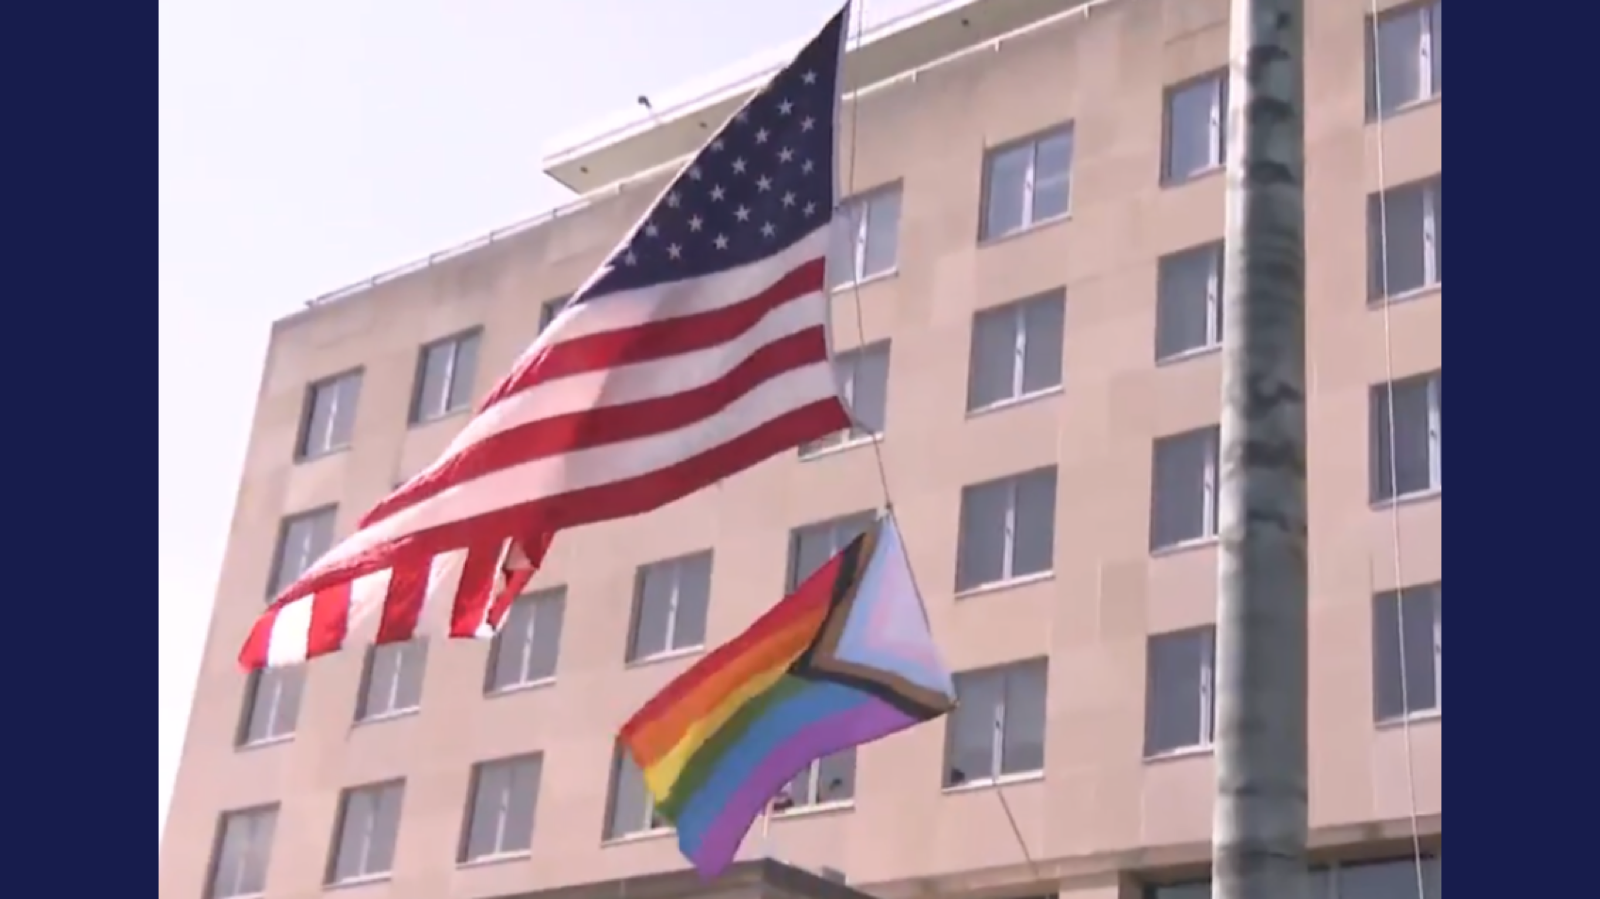 The State Department raises the Progress Pride flag over their headquarters